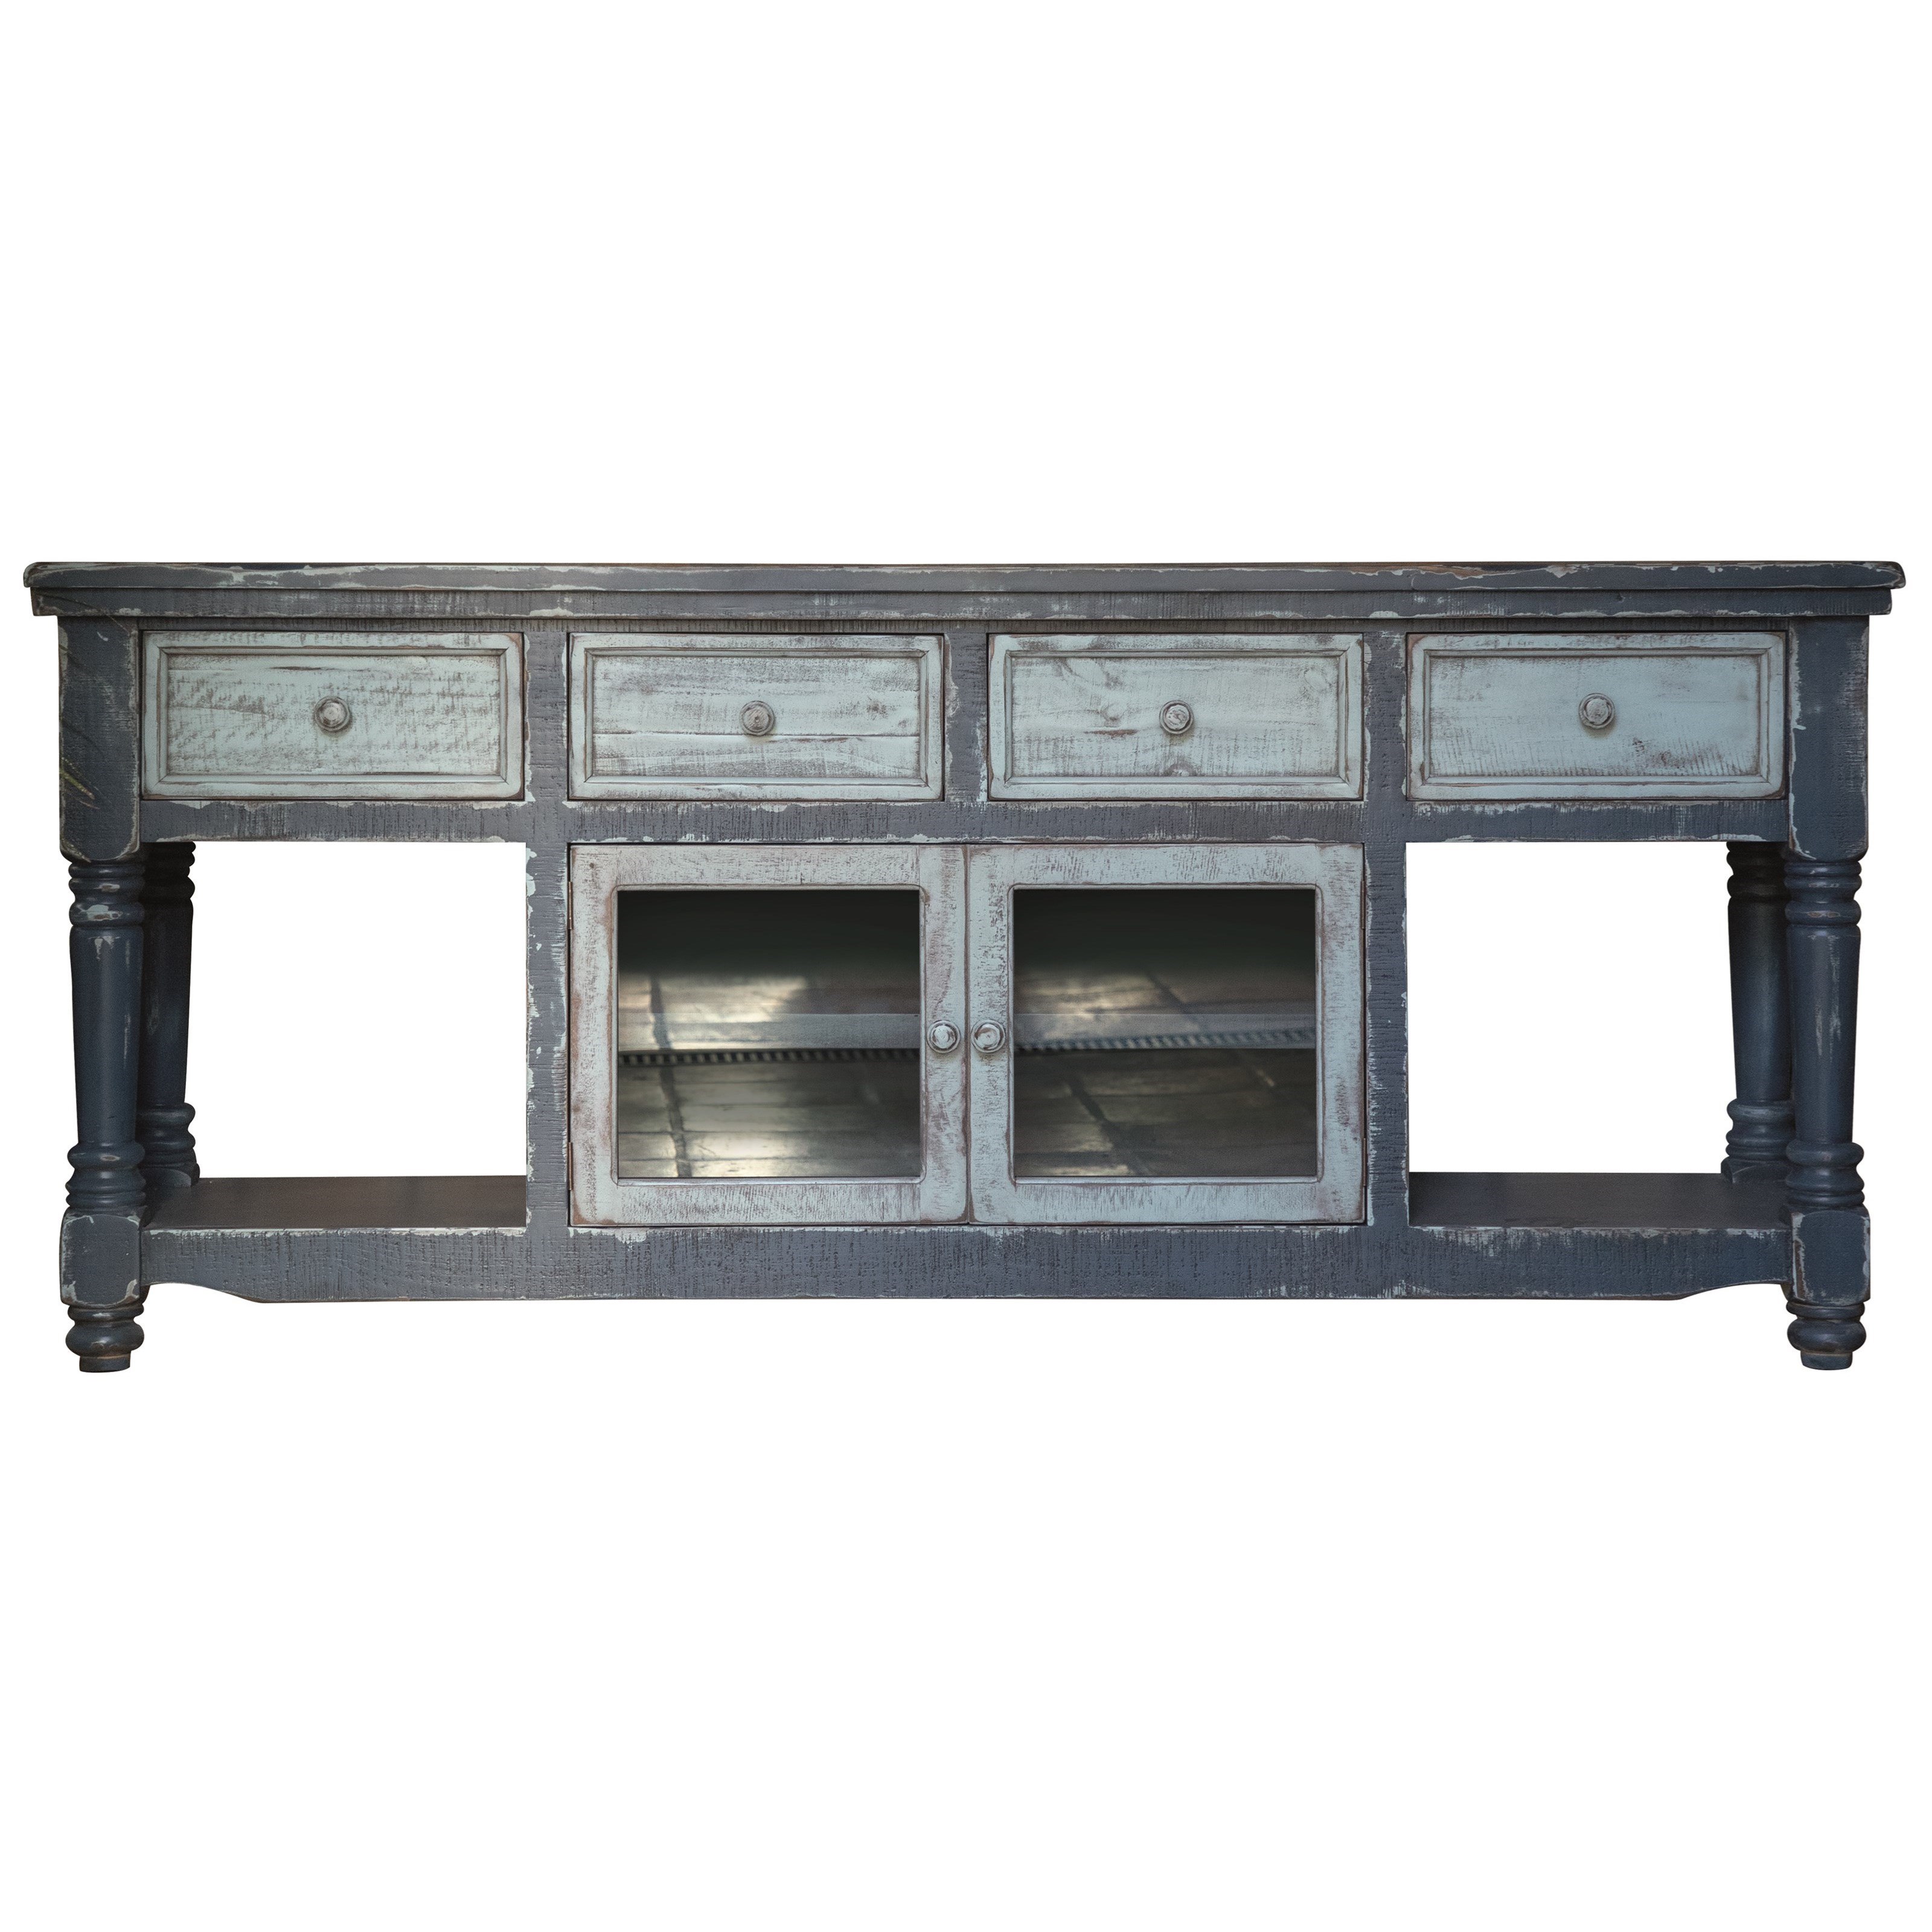 """Aruba 70"""" TV Stand with 4 Drawers and 2 Doors by International Furniture Direct at Houston's Yuma Furniture"""